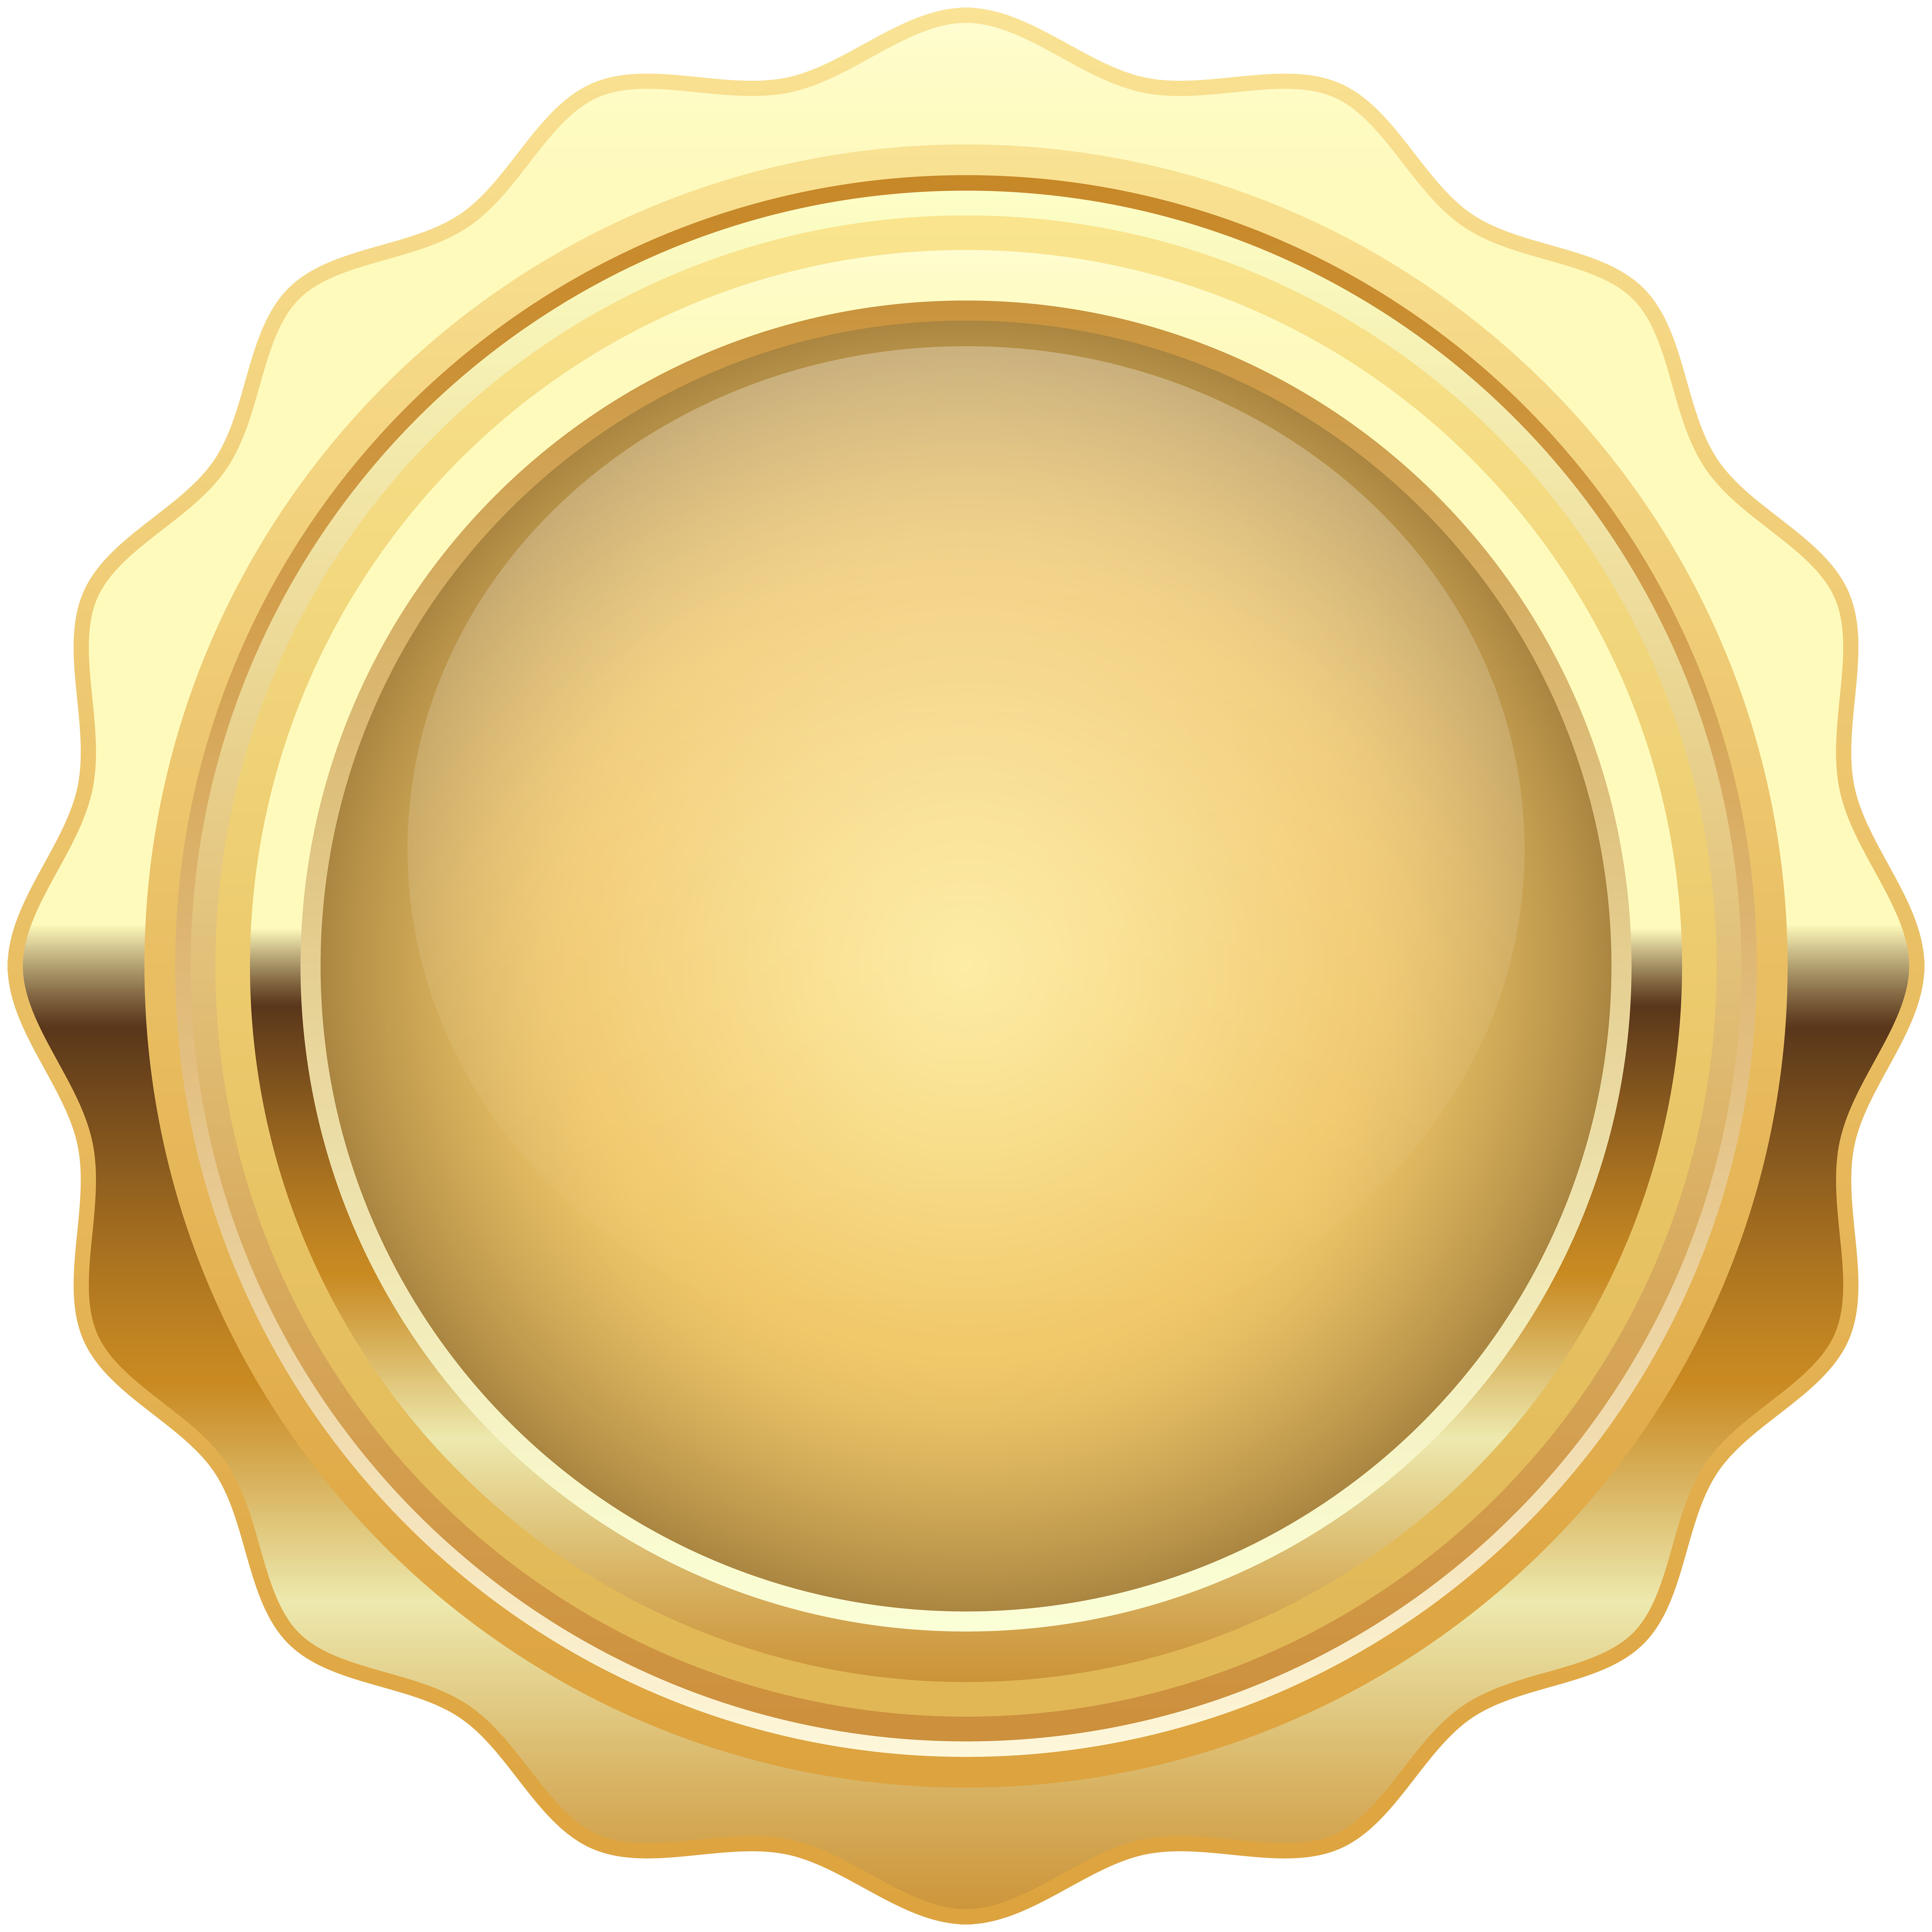 Gold wax seal clipart banner royalty free download Gold Wax Seal free clipart | Clipart Finders banner royalty free download